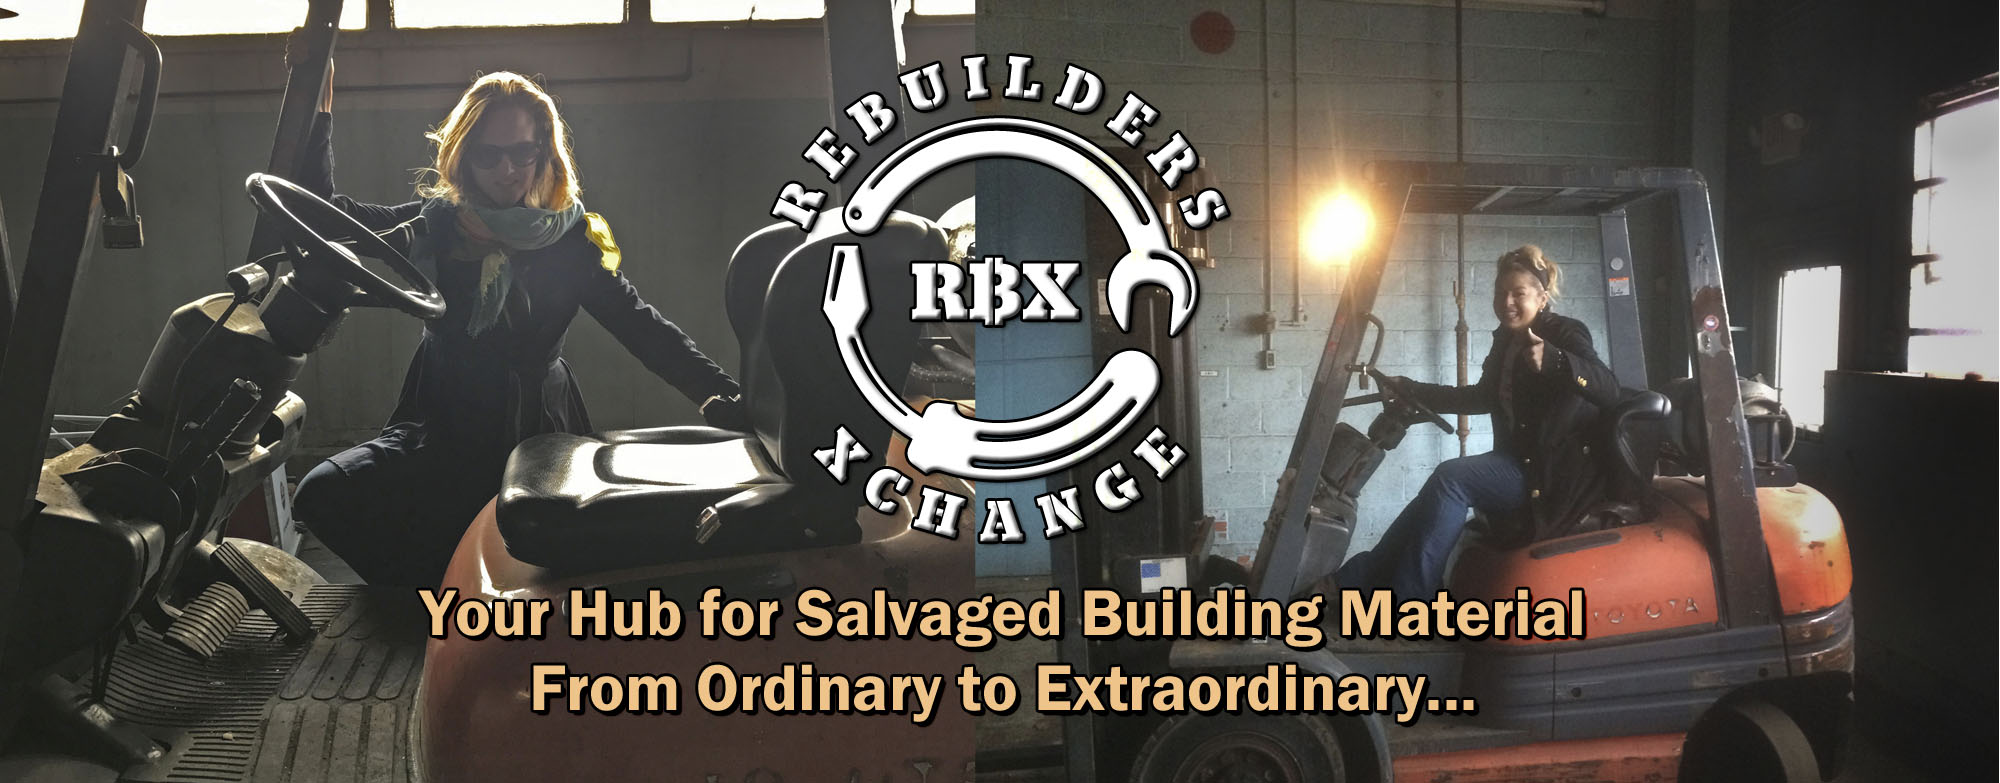 Welcome to Rebuilders Xchange - From Ordinary to Extraordinary!